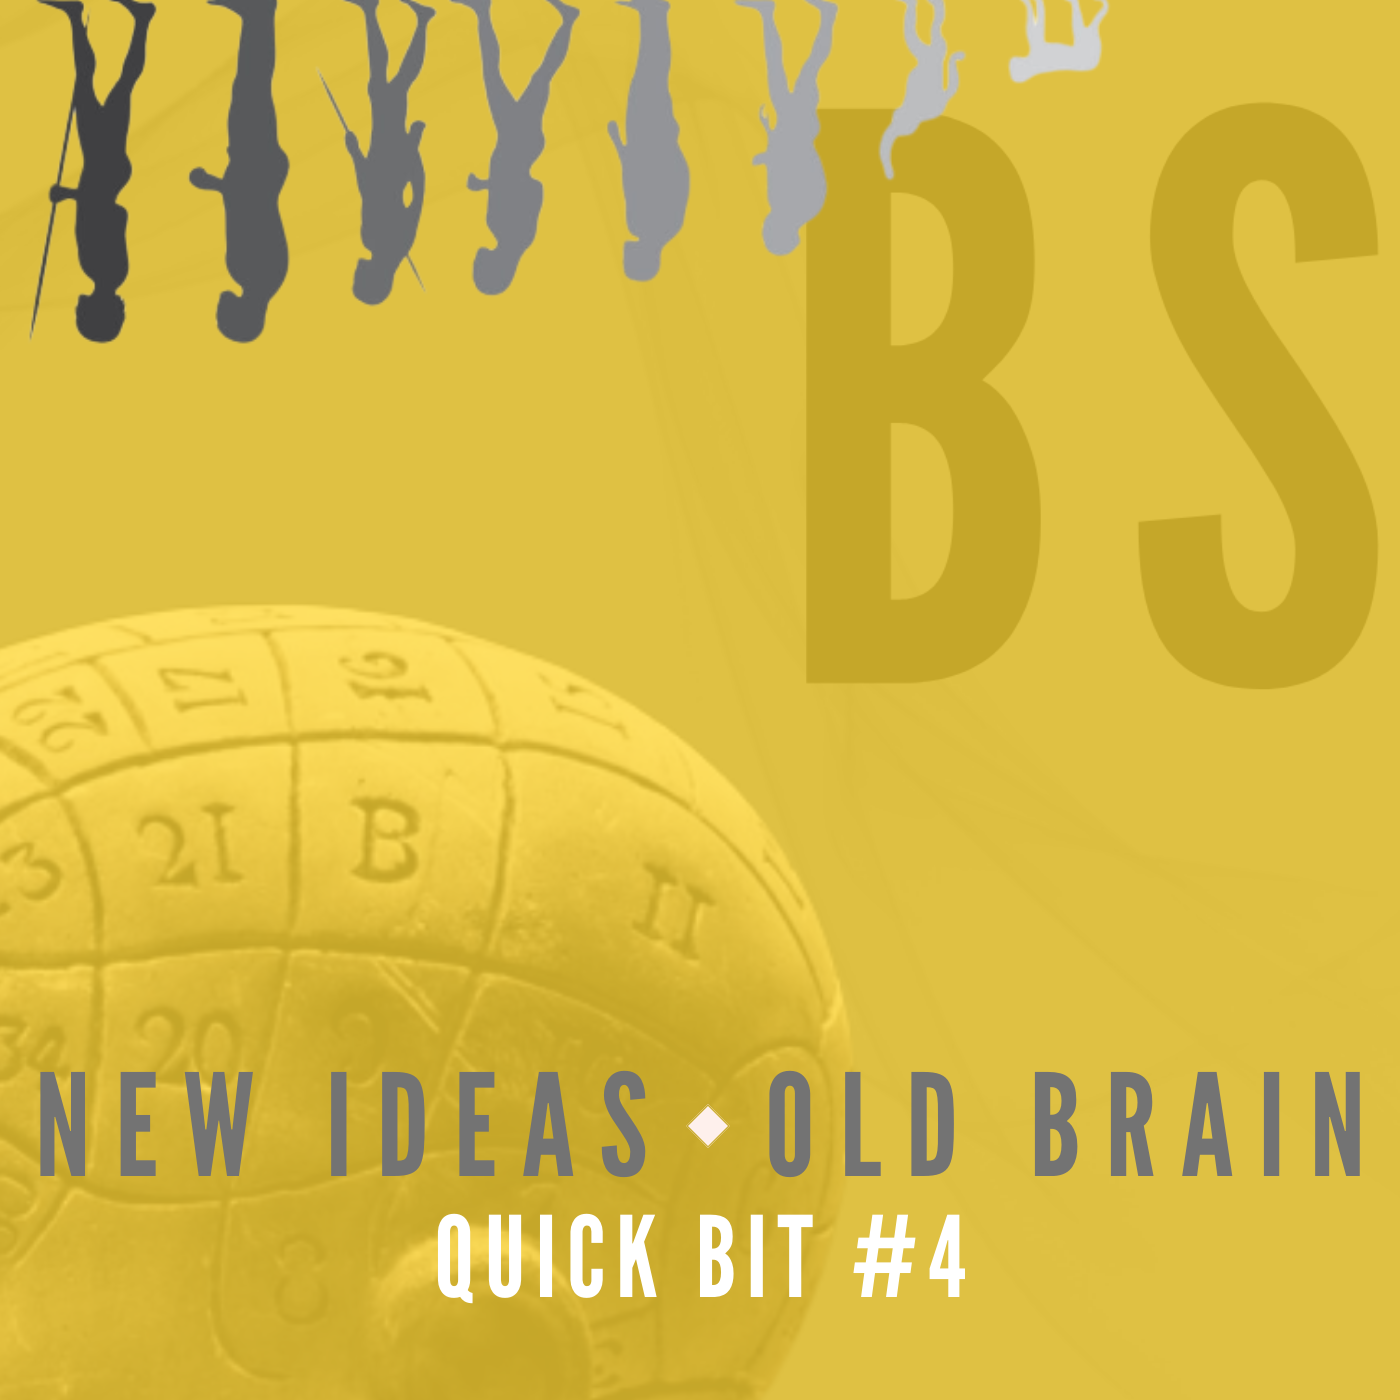 New Ideas, Old Brain Quick Bit #4: The Bias Explaining Why You Fail at Your Goals